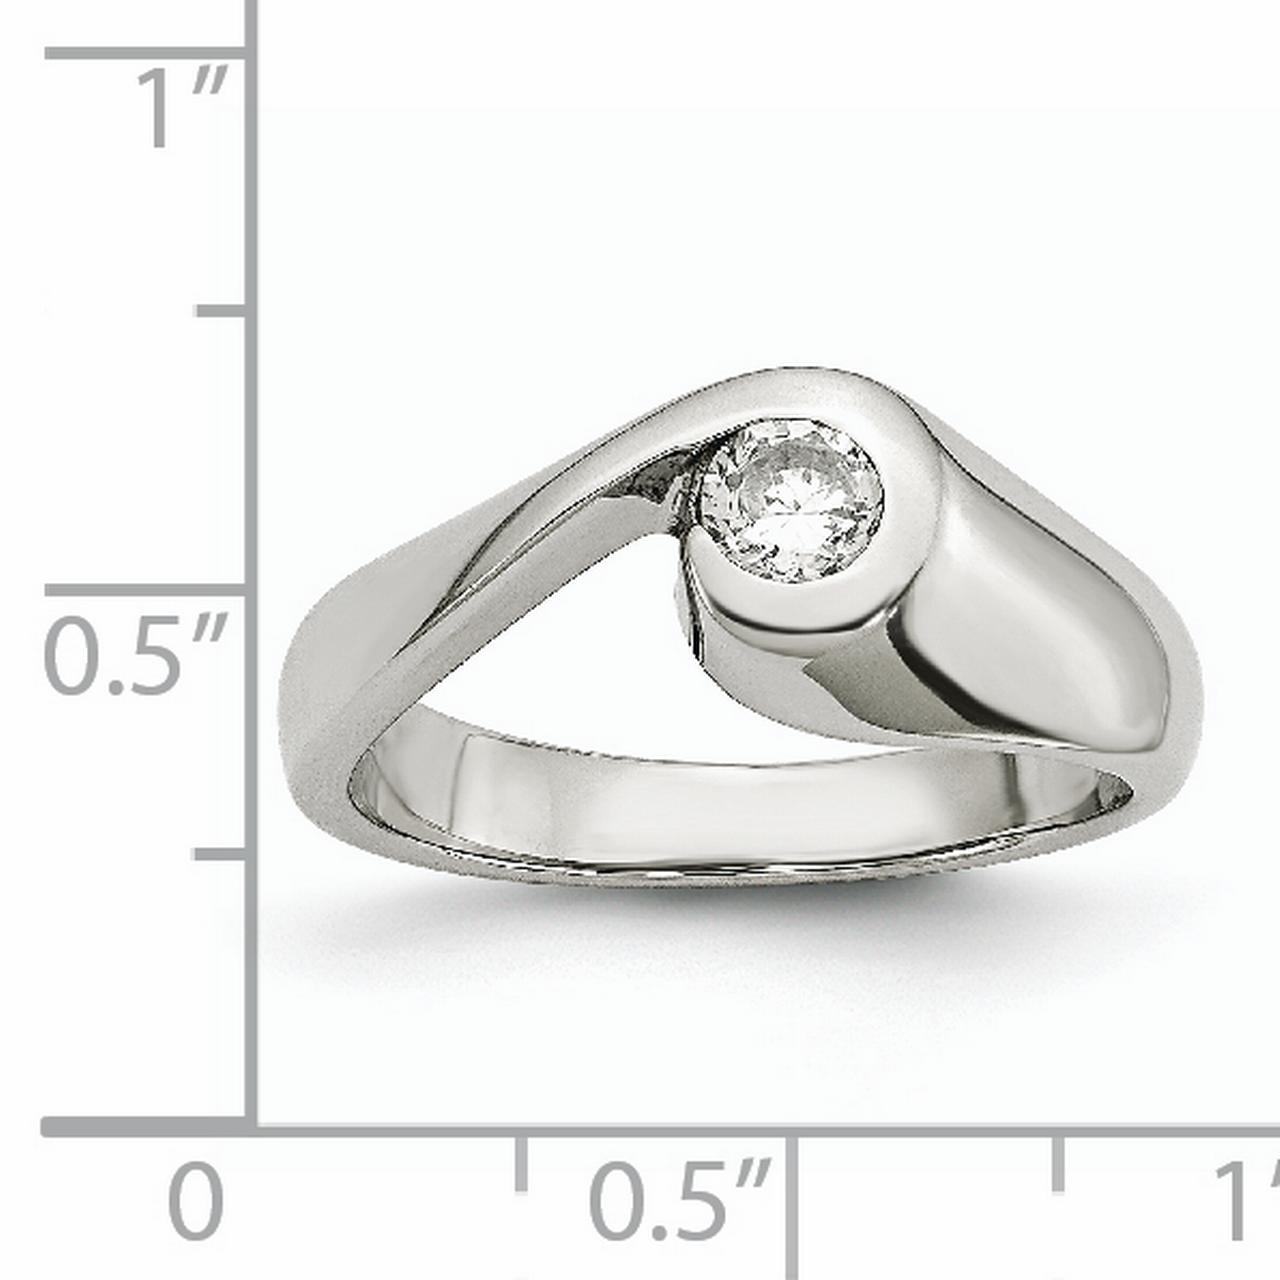 Stainless Steel Cubic Zirconia Cz Band Ring Size 7.00 Fashion Jewelry Gifts For Women For Her - image 5 of 7